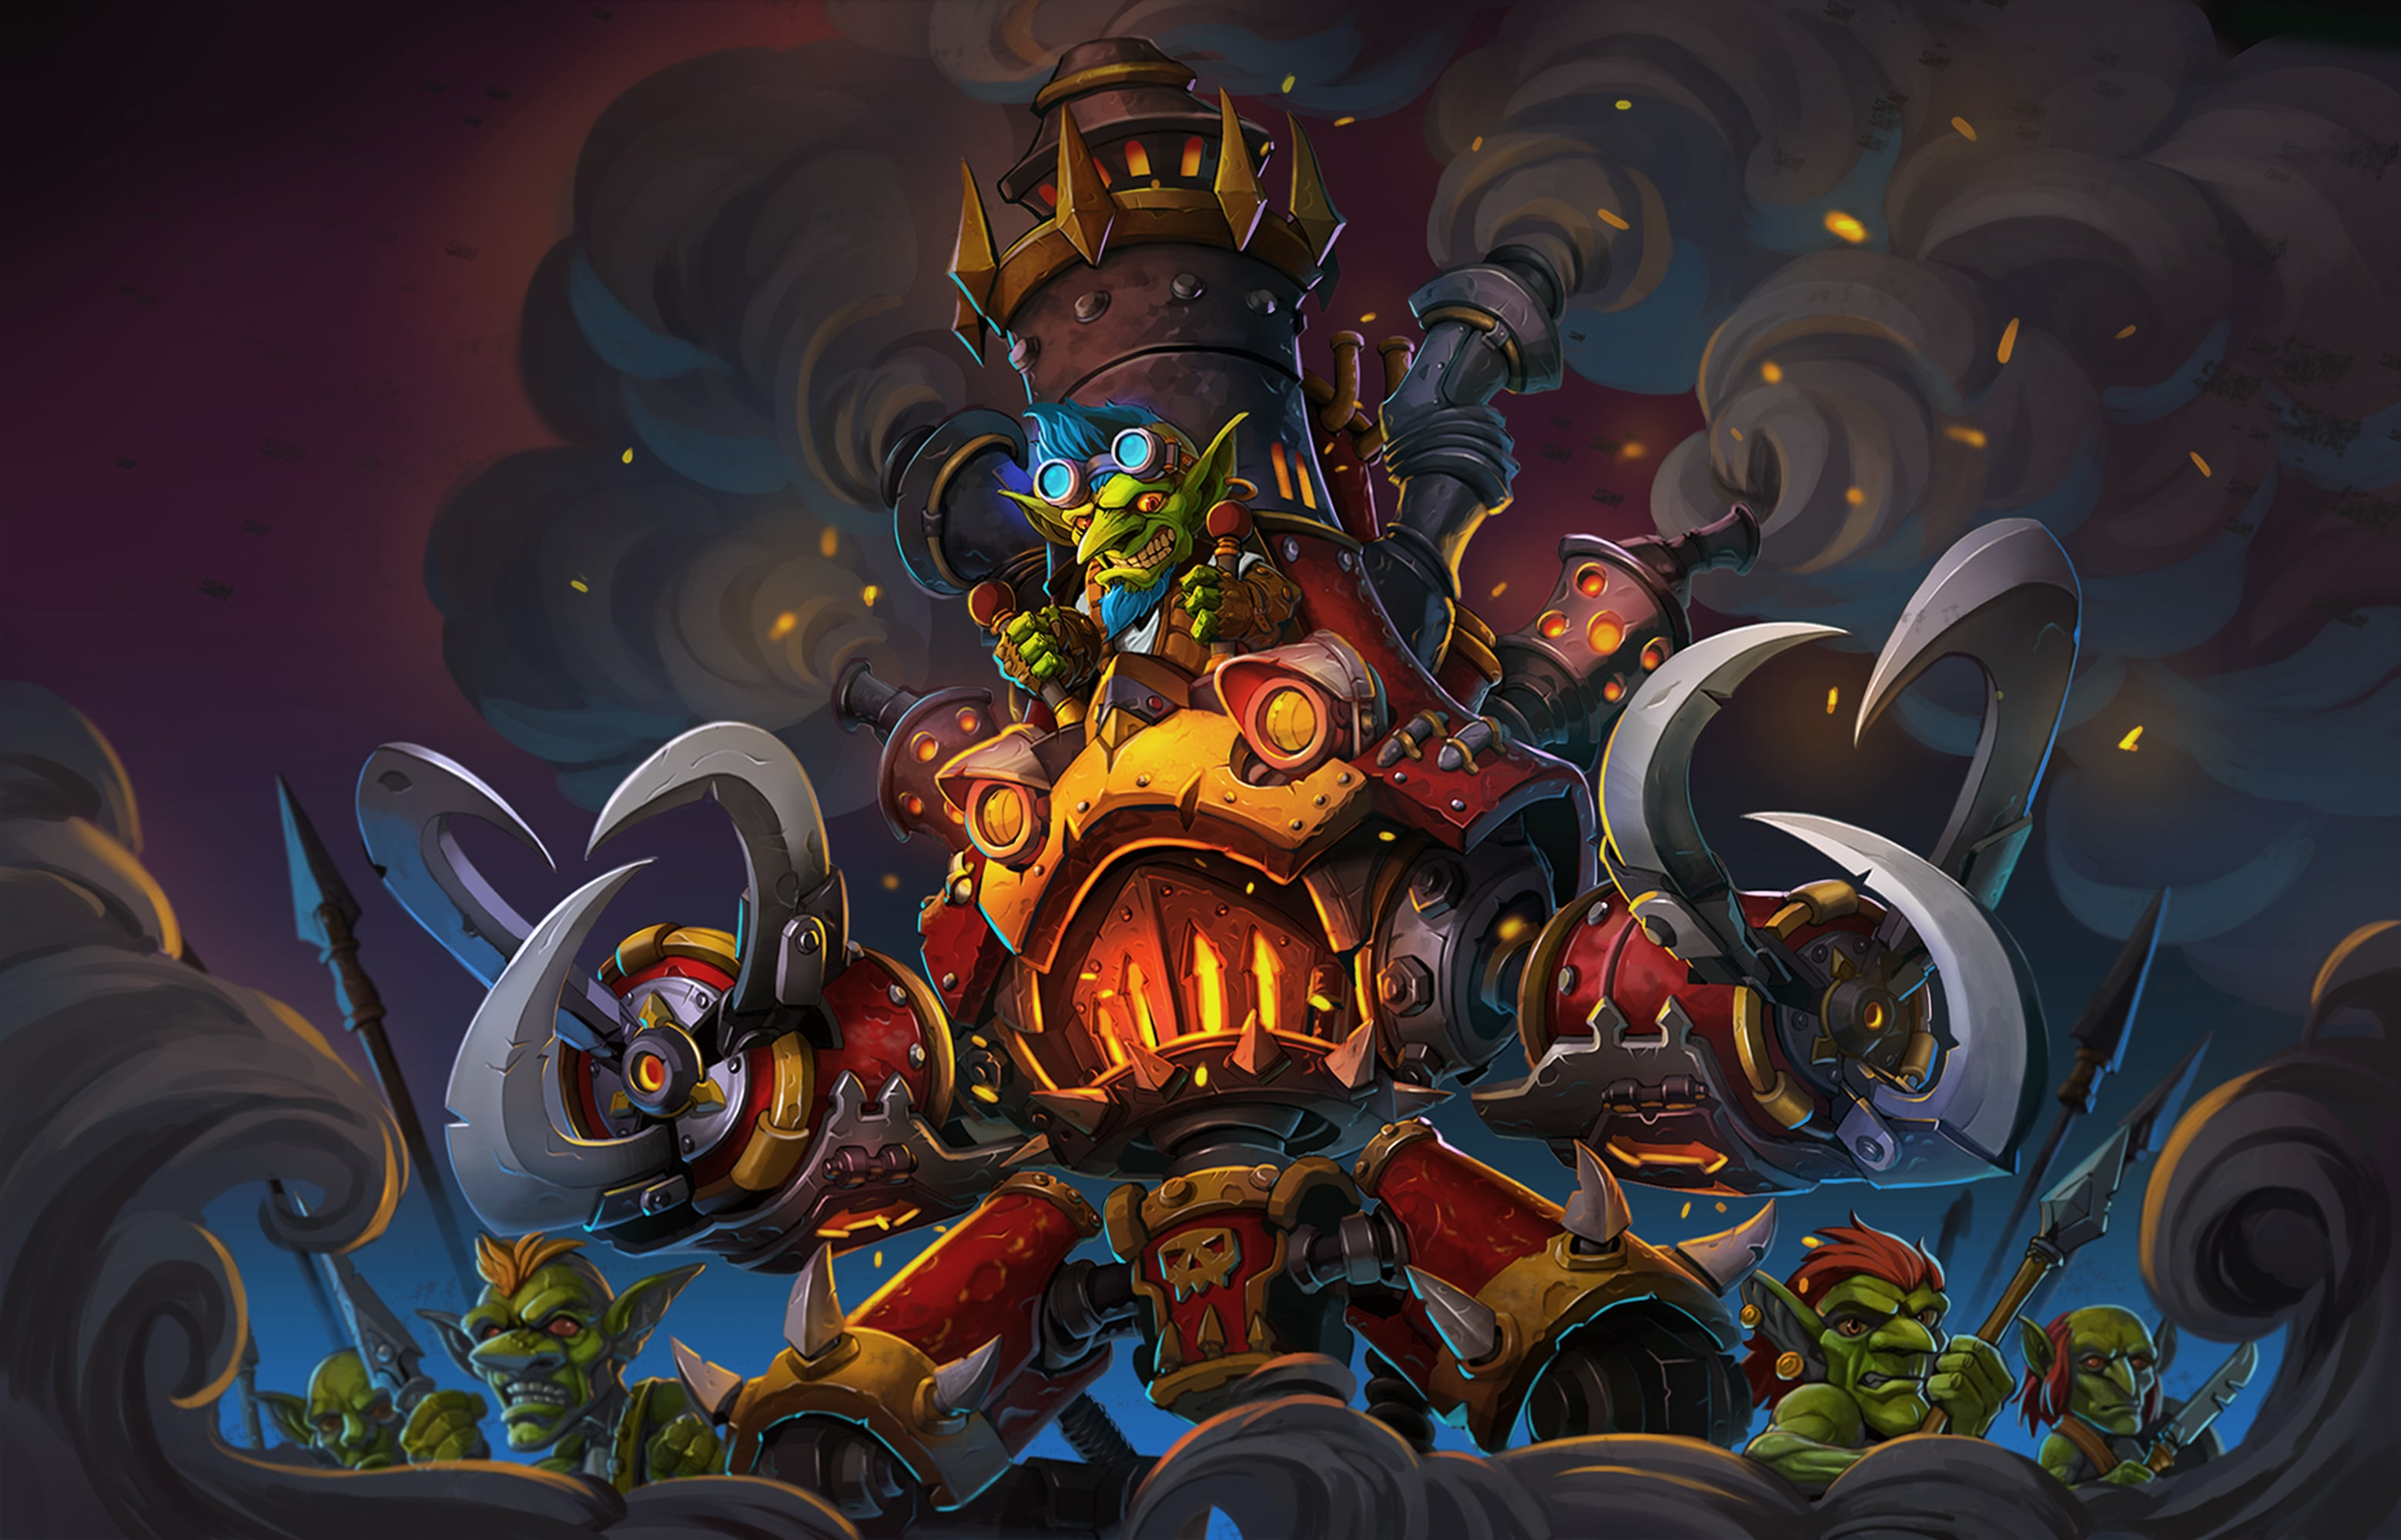 Hearthstone: Goblins Vs. Gnomes desktop wallpaper